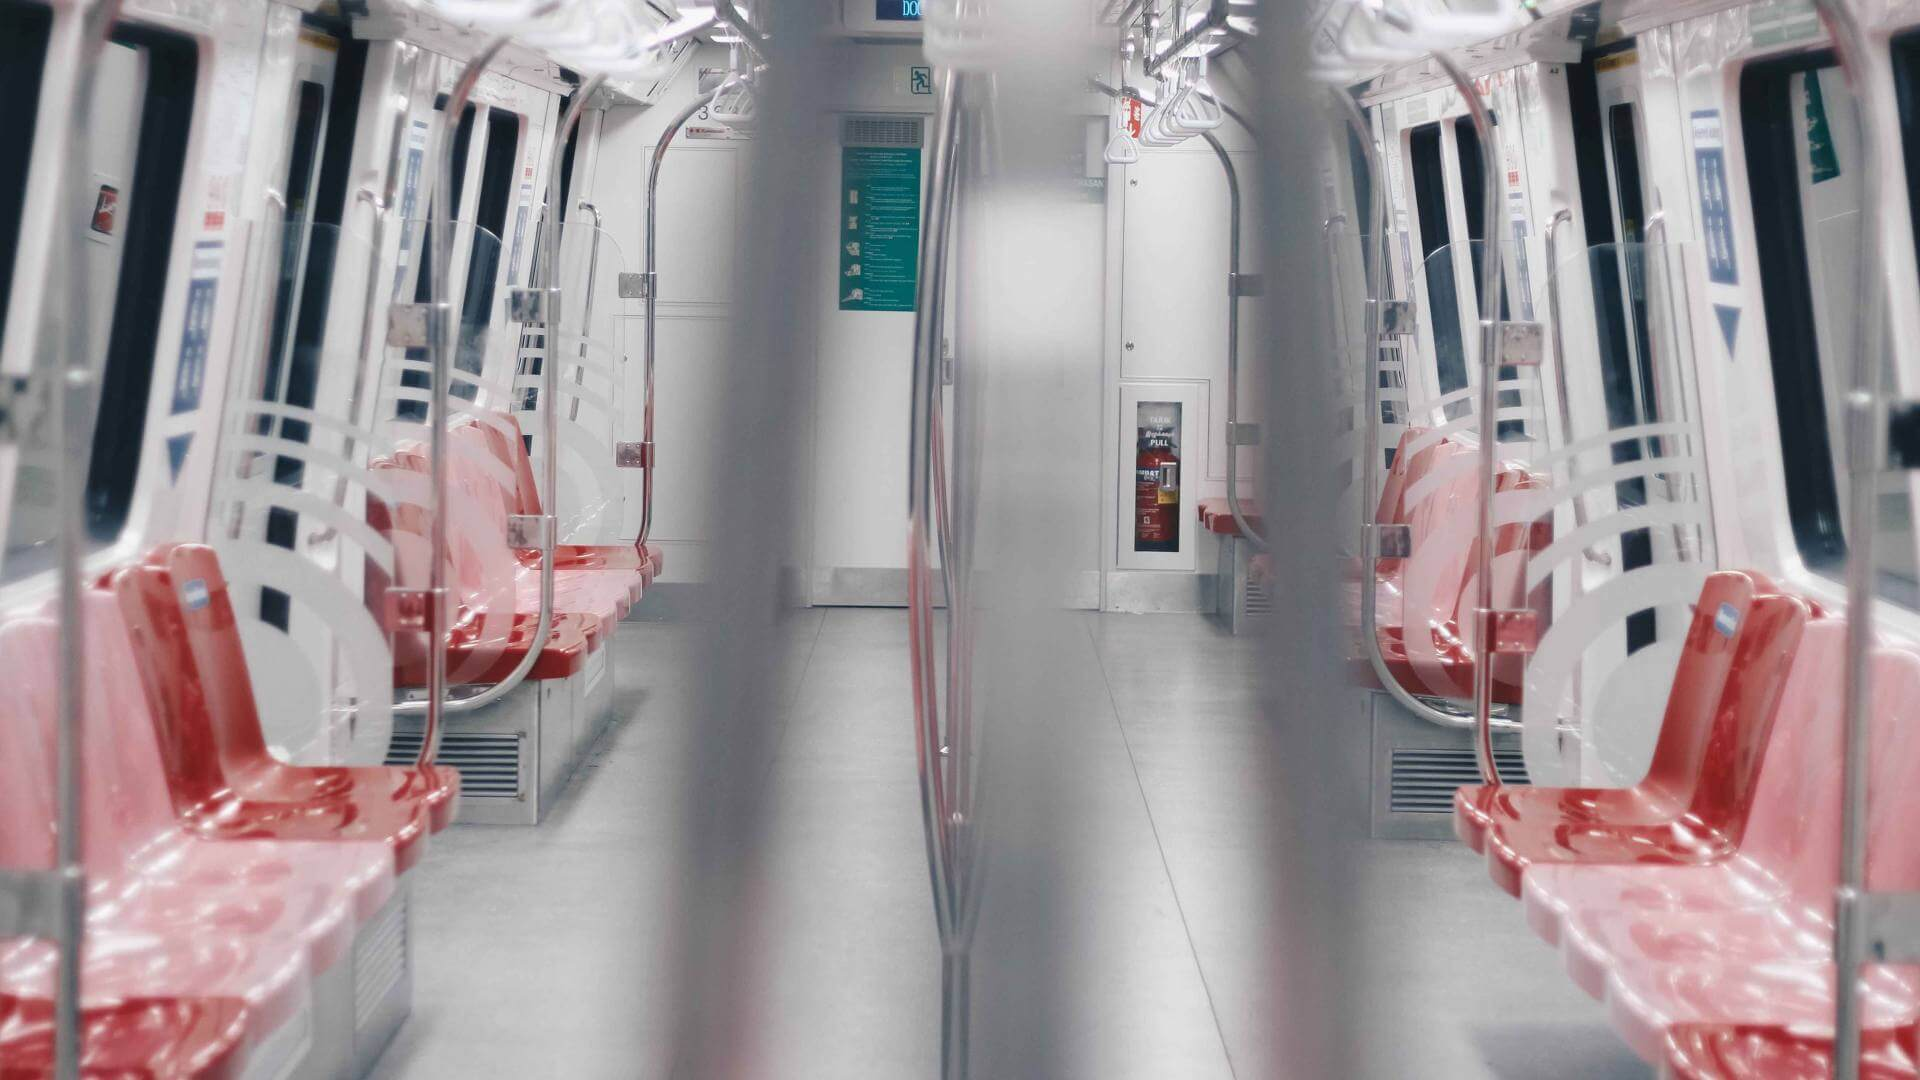 Inside of a metro train with white walls and red chairs.